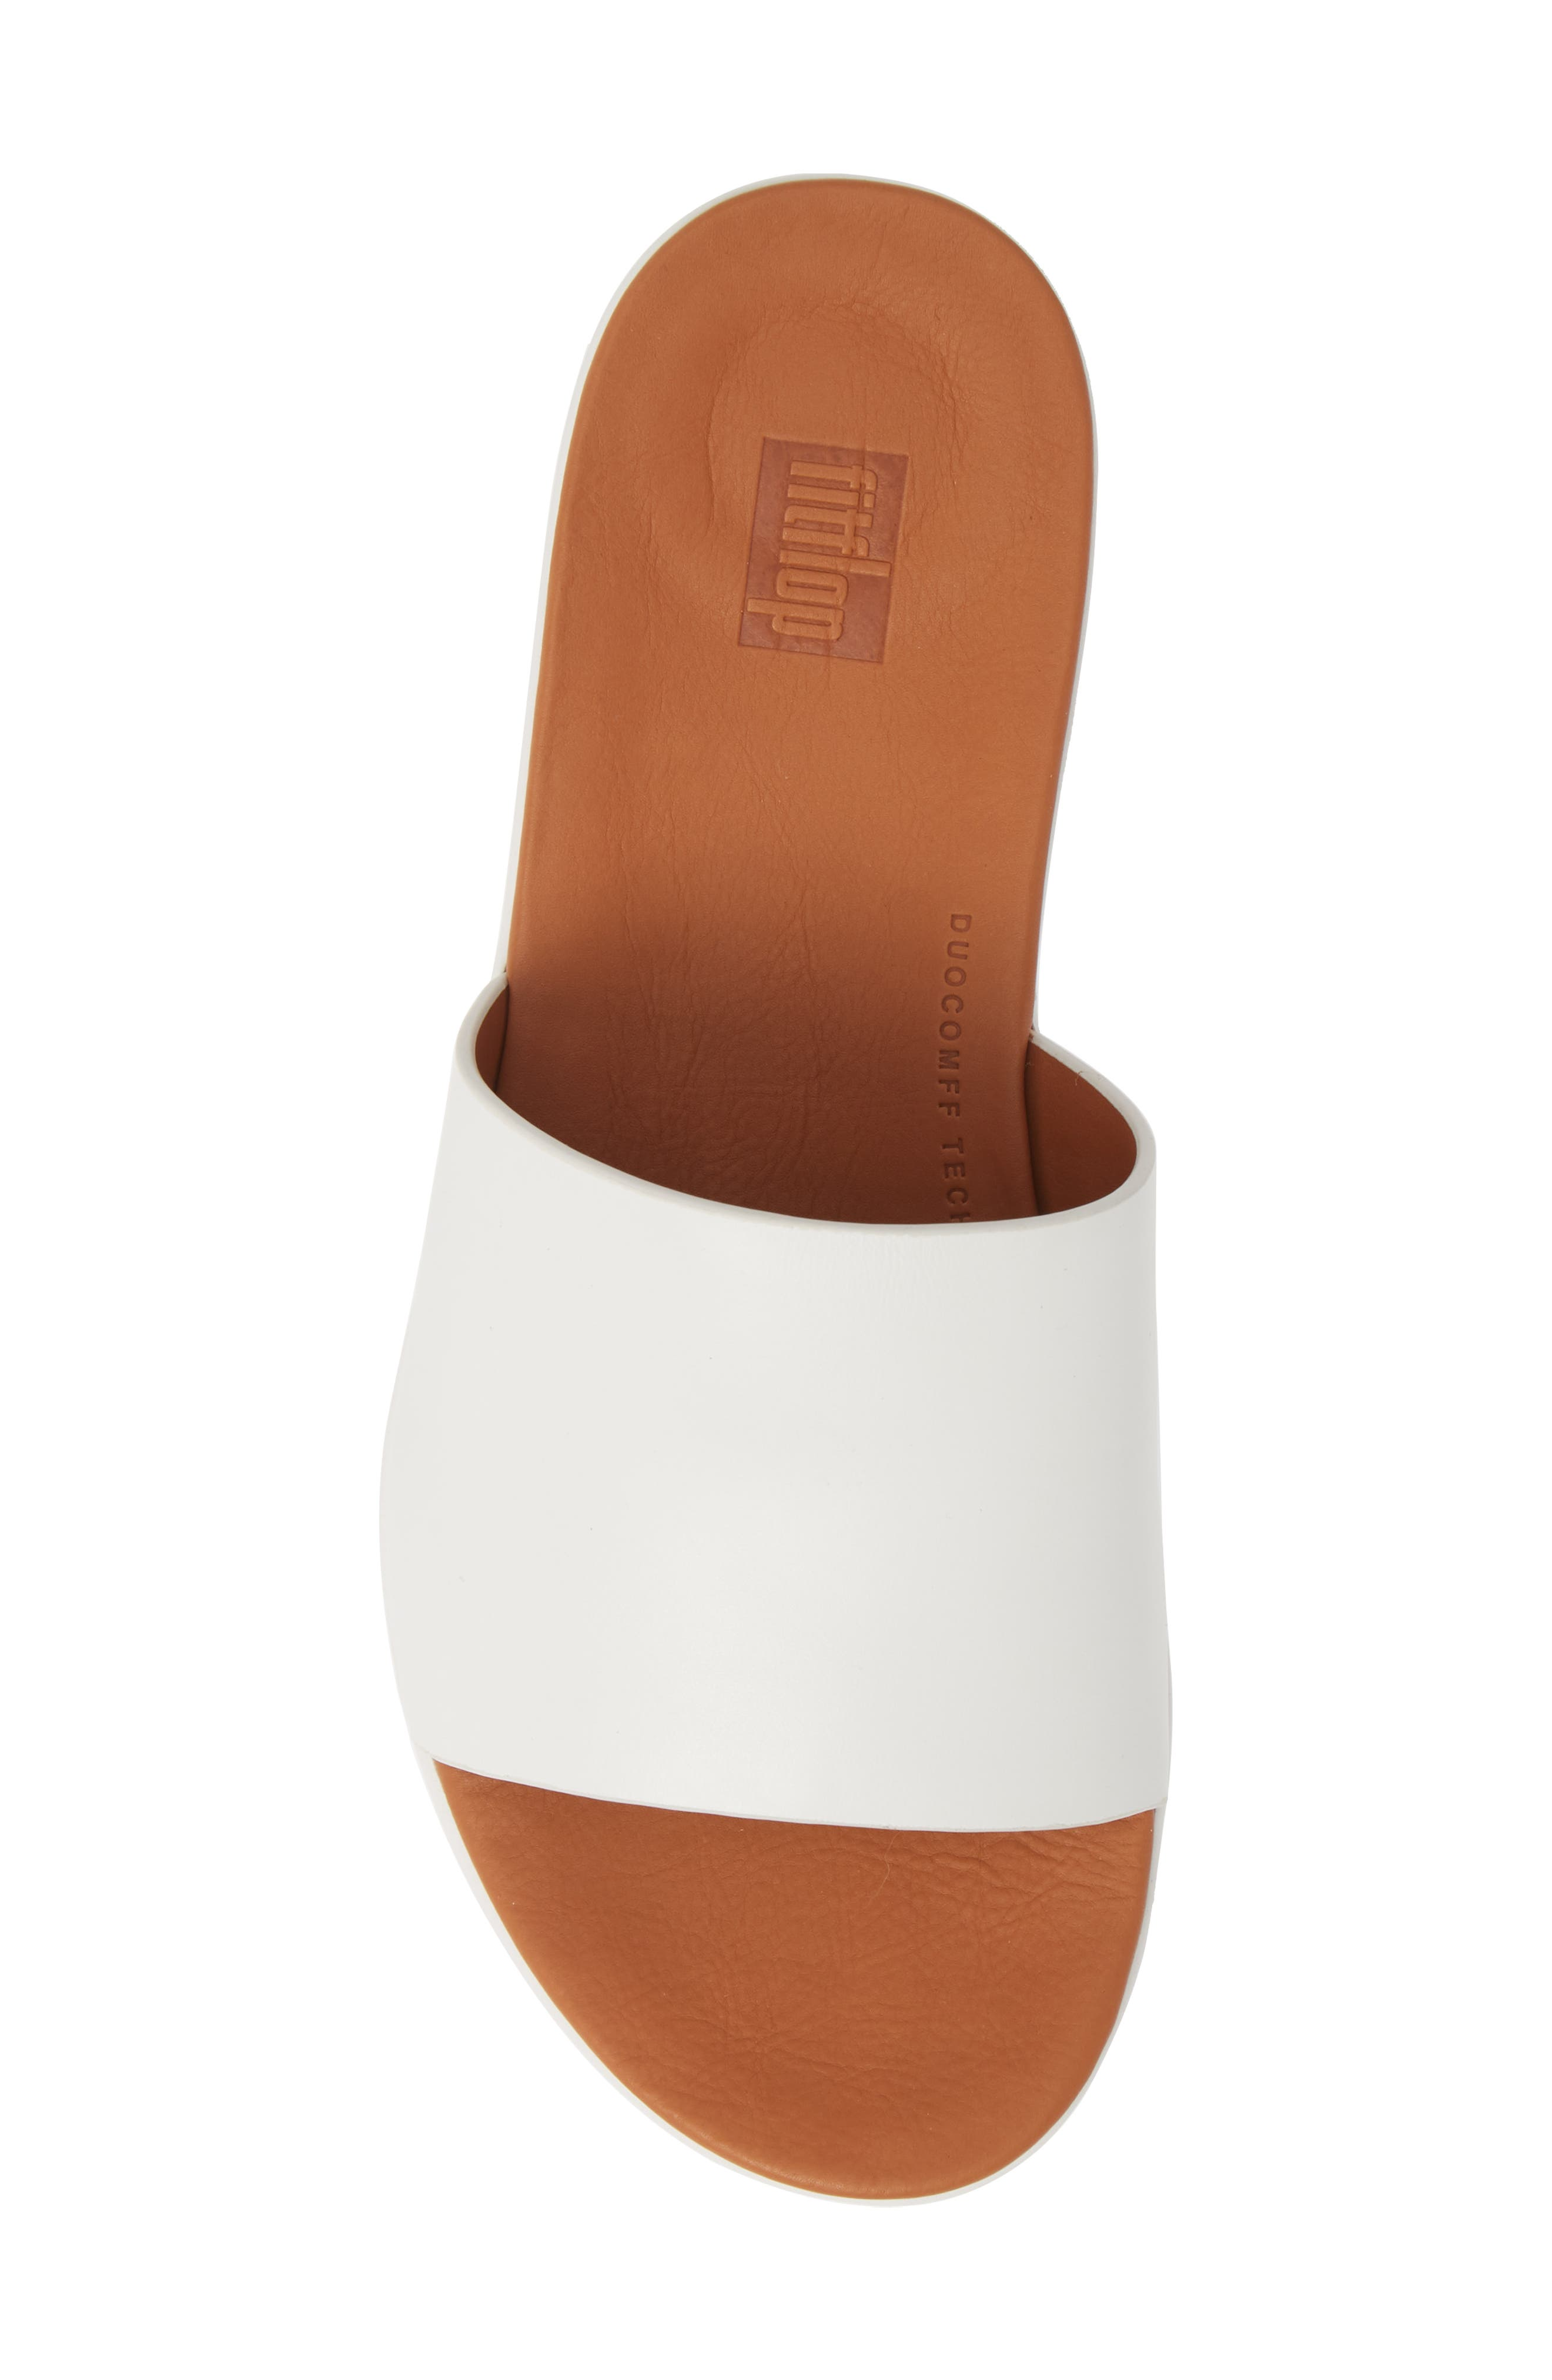 FITFLOP,                             Sola Sandal,                             Alternate thumbnail 5, color,                             URBAN WHITE LEATHER